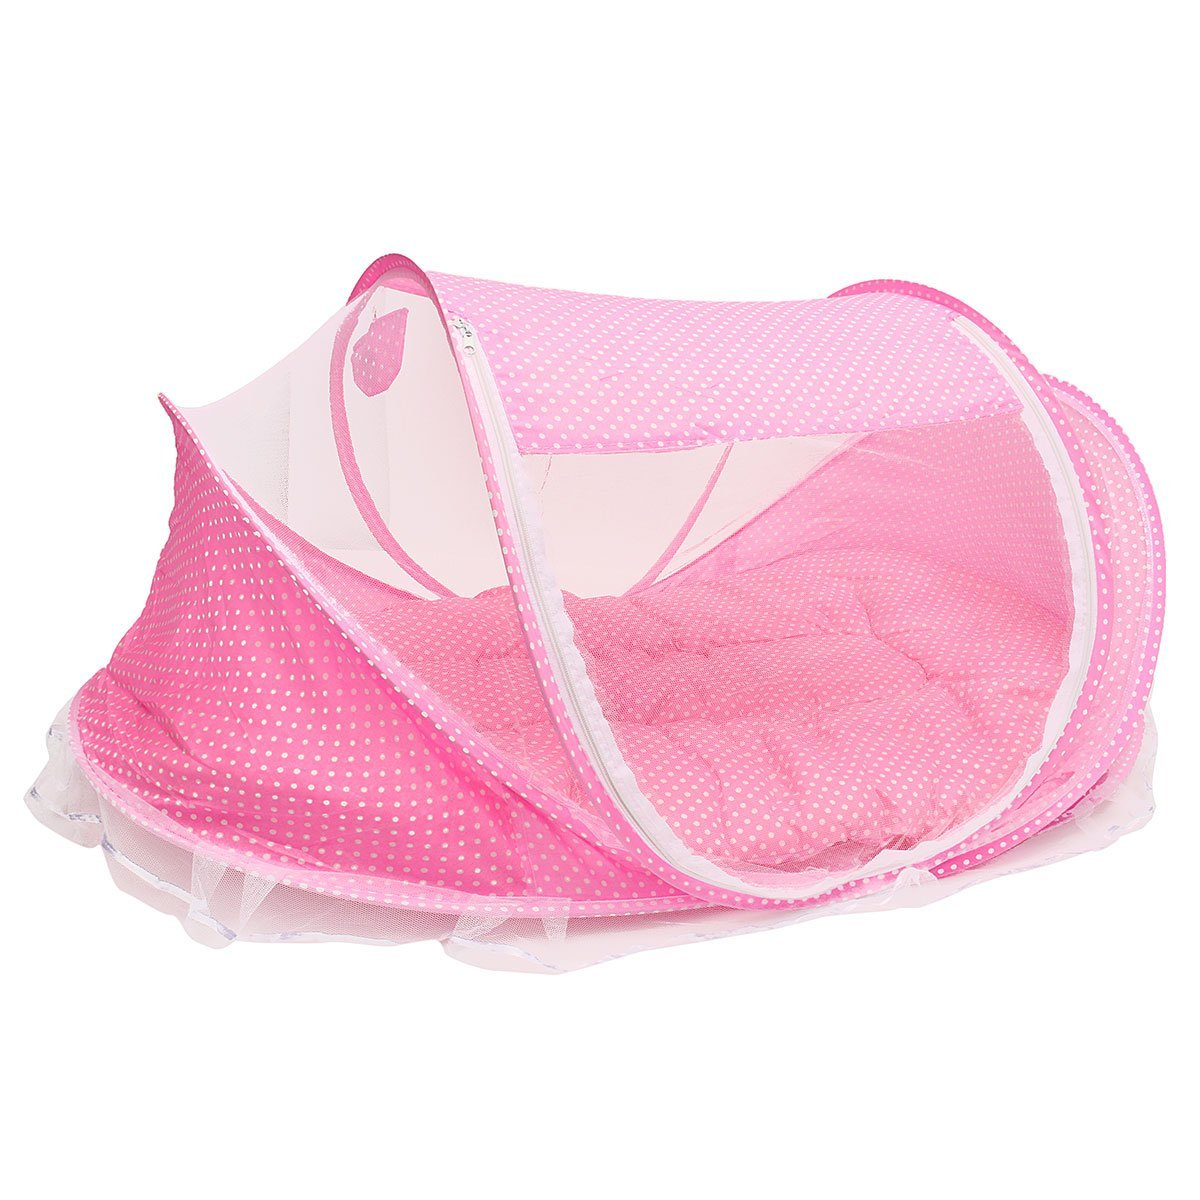 Portable Toddler Bed Cot Travel Kids Camping Folding New Baby Child Regalo Pink New Guarantee By Skroutz It Comes Only With Skroutz Unique Ebook Talkingbread Co Il